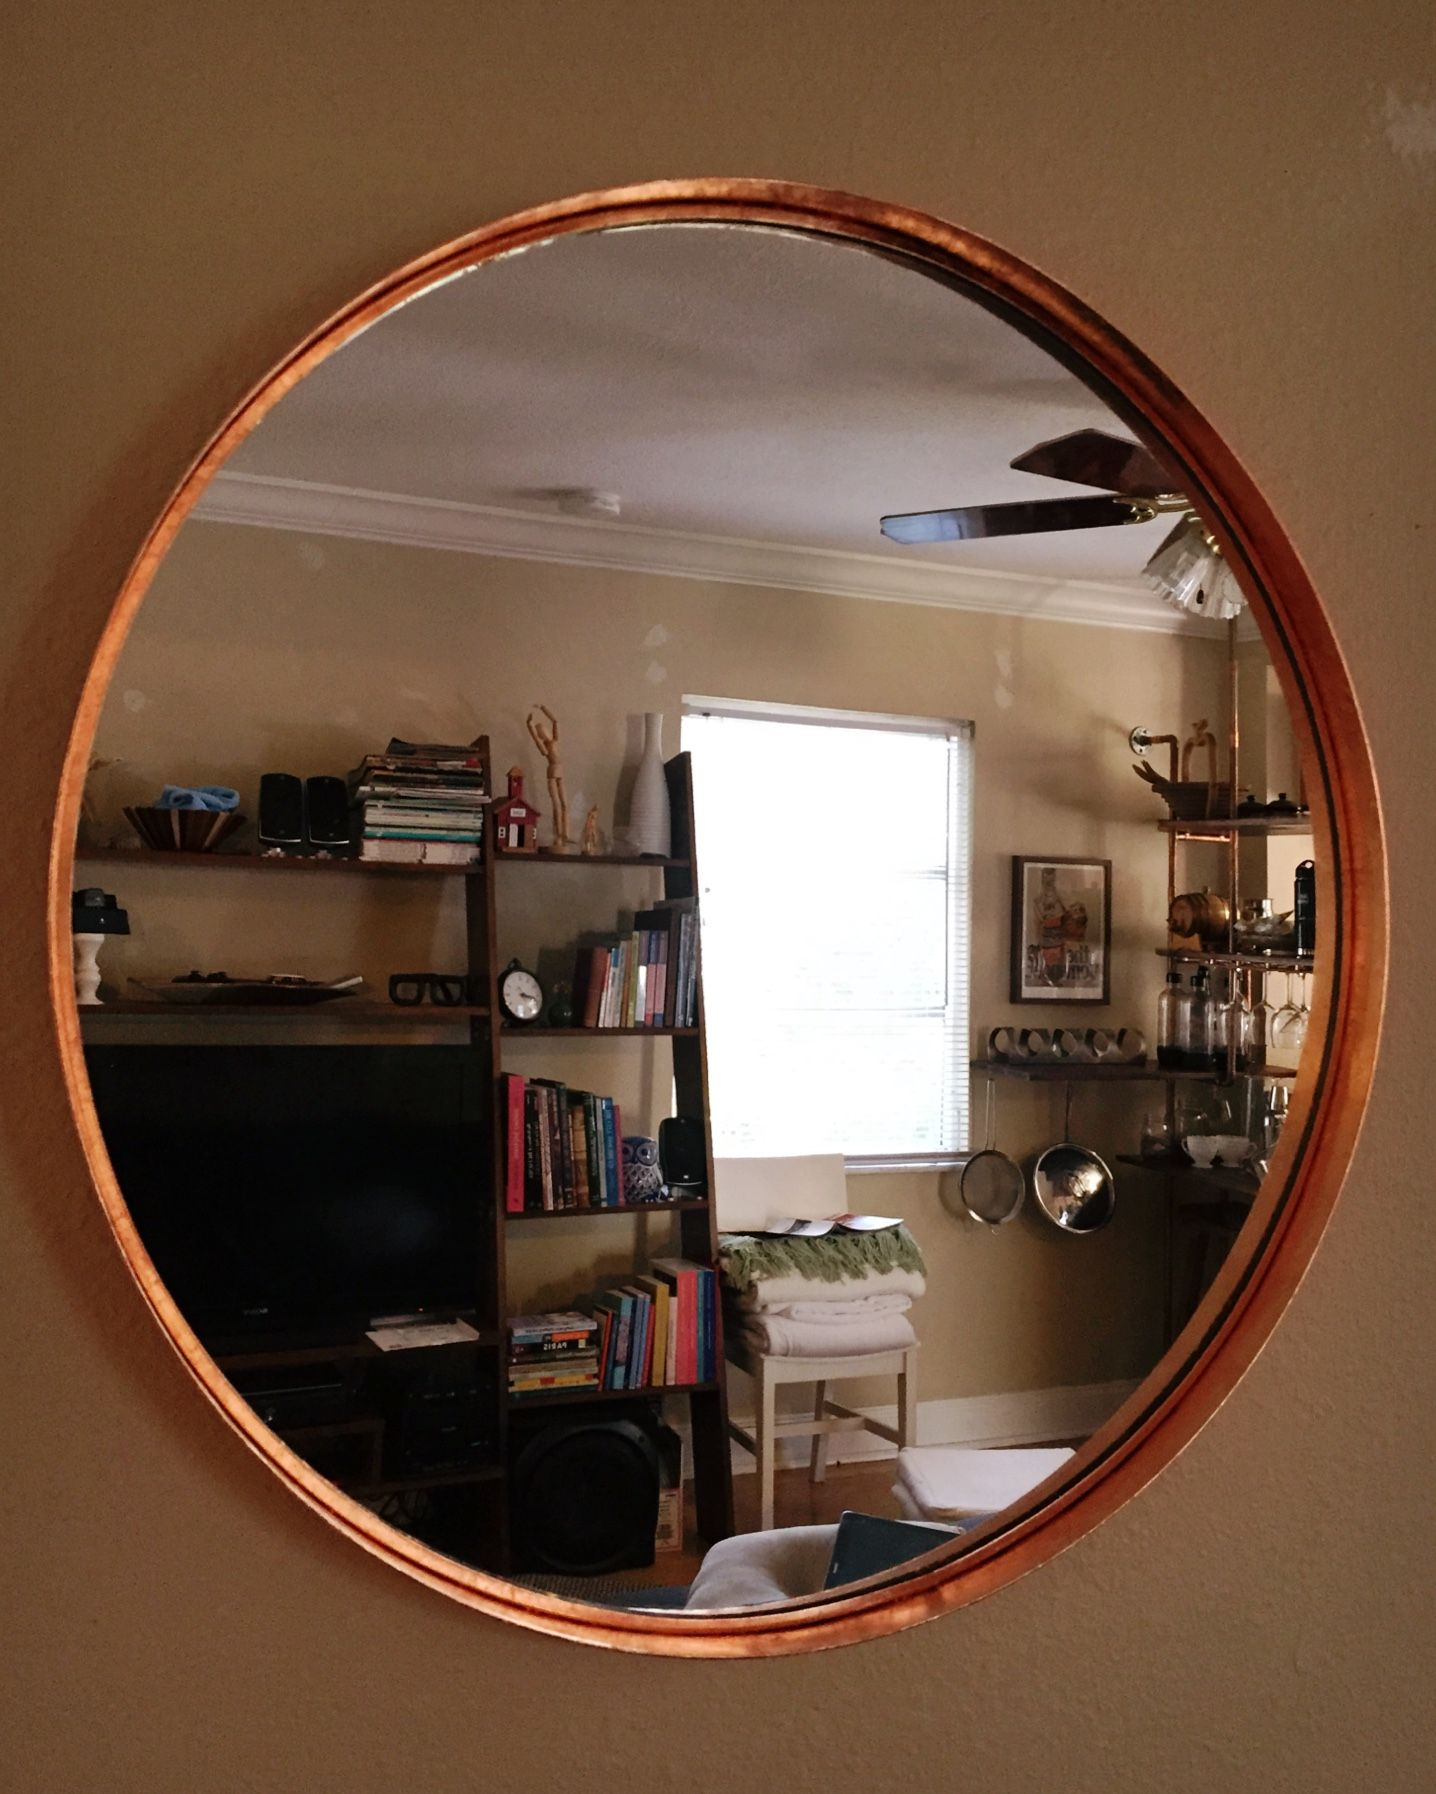 IKEA Bathroom Mirror Refinished With Copper Leaf